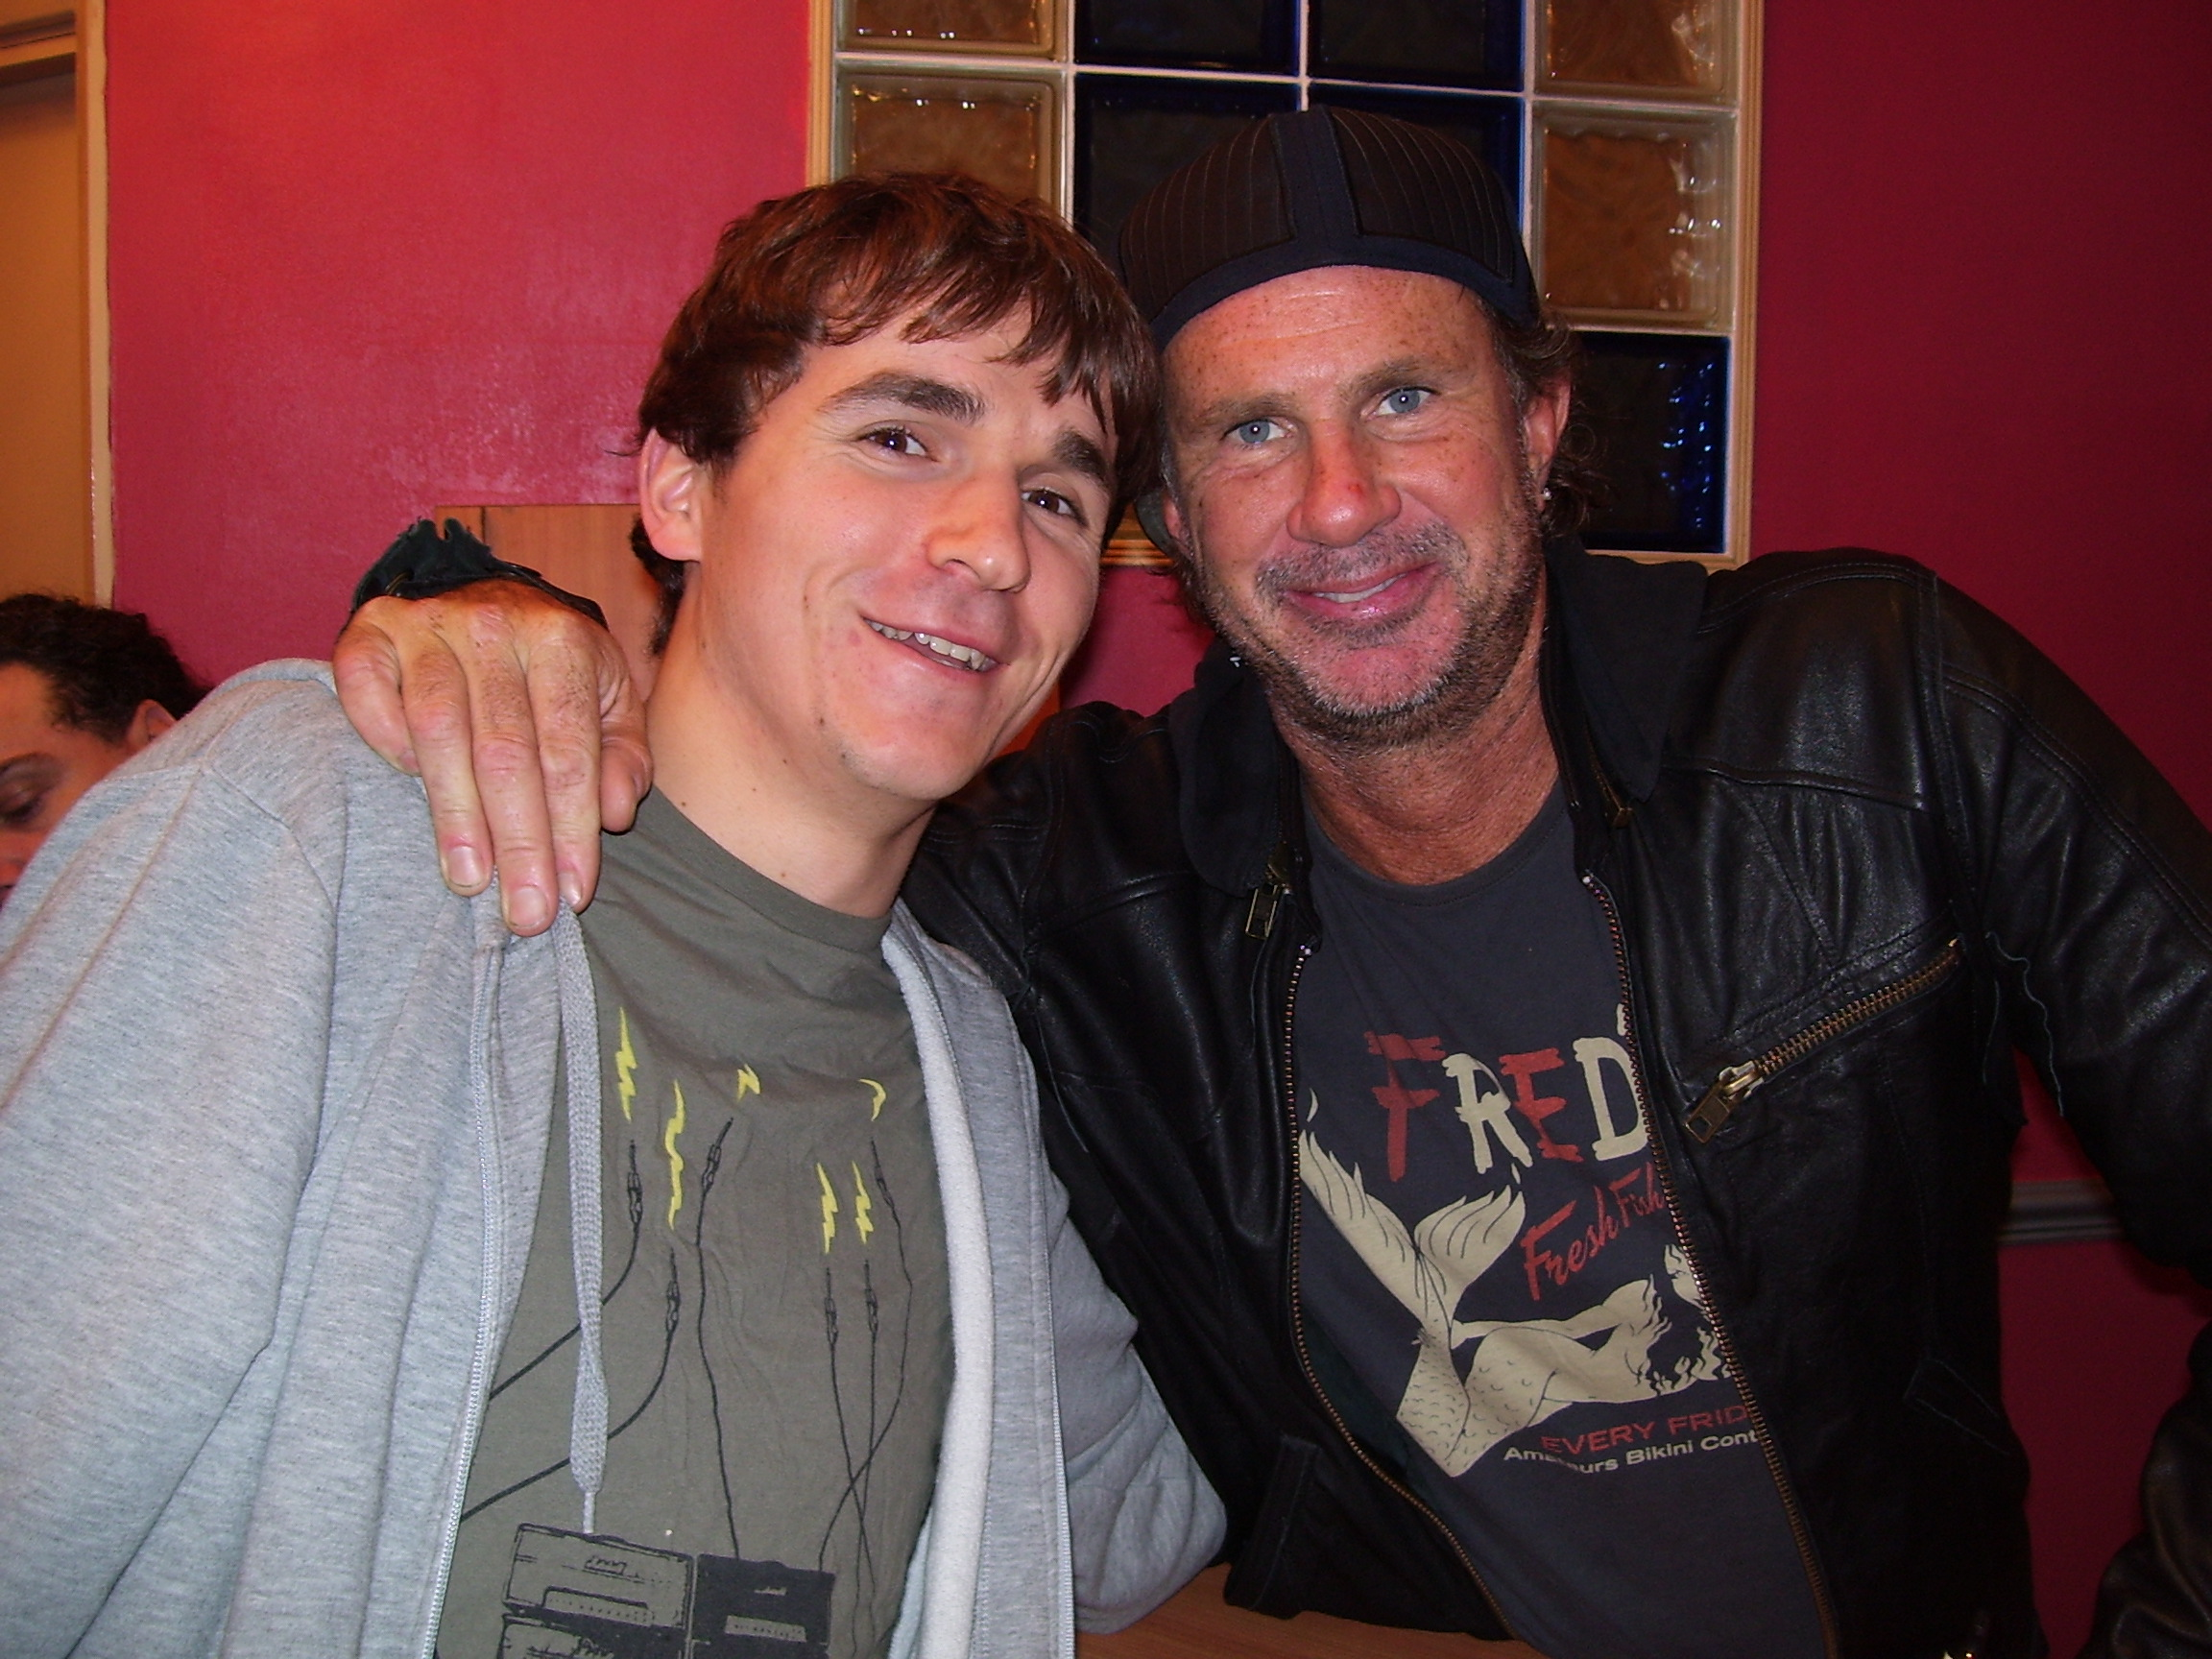 scott-with-drummer-chad-smith-from-the-red-hot-chili-peppers_5030457261_o.jpg